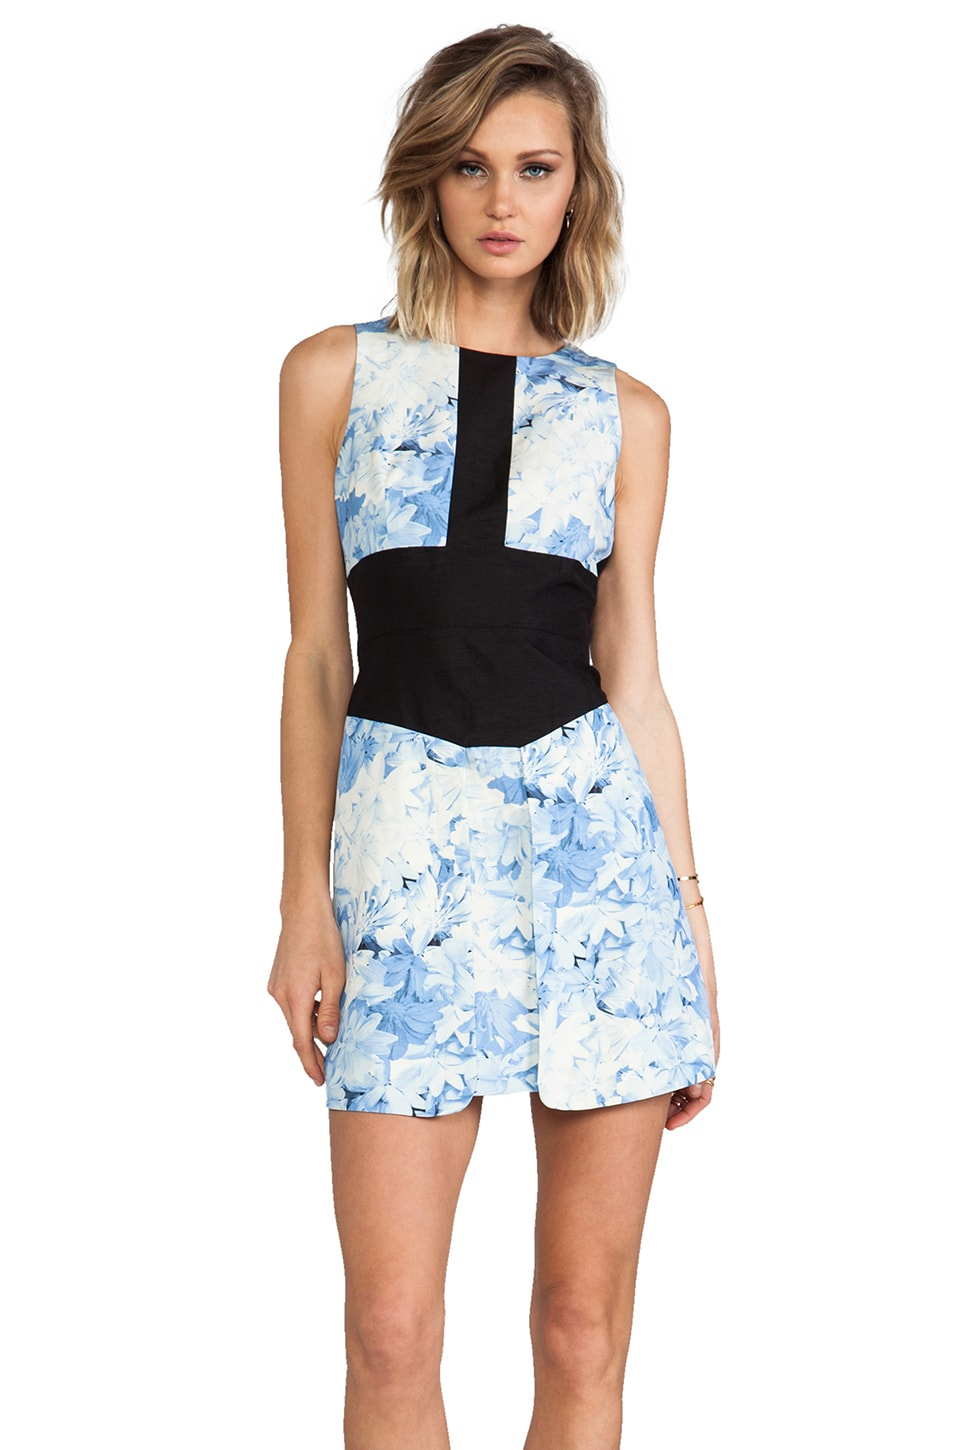 Tibi Daisies Sleeveless Dress in Baby Blue Multi